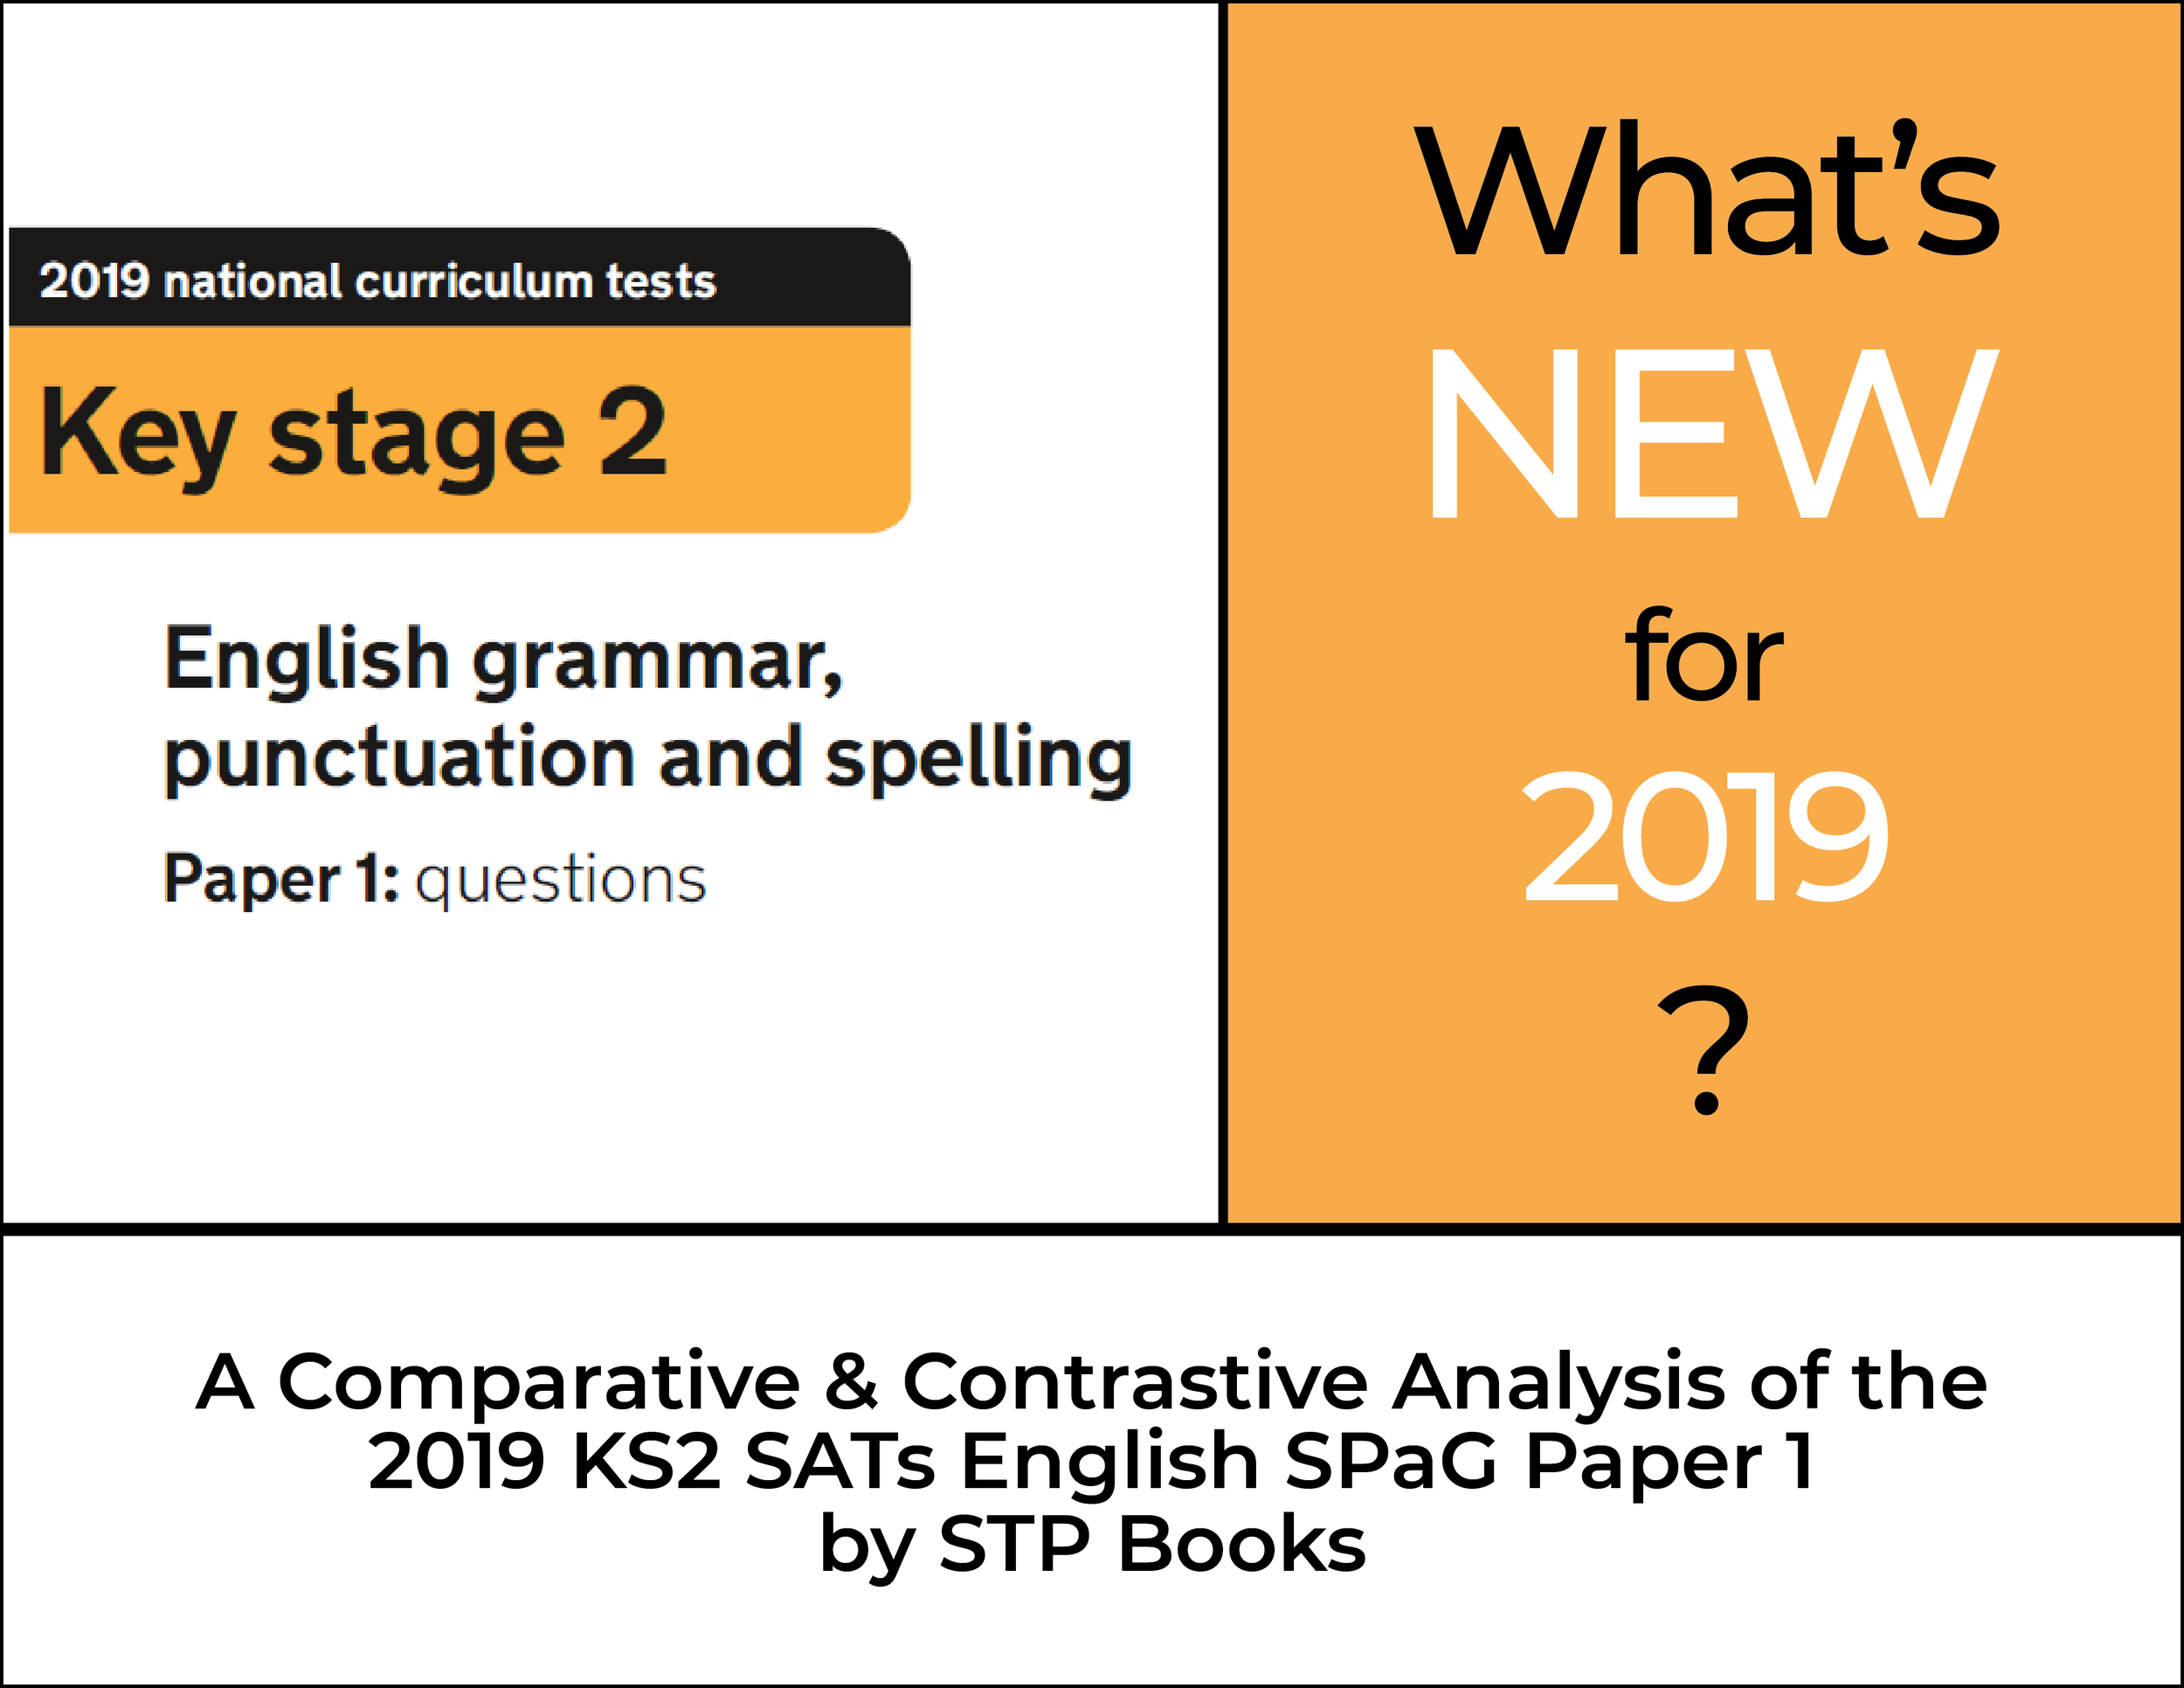 KS2 SATs SPaG English Paper 1 2019 Whats New STP Books.png